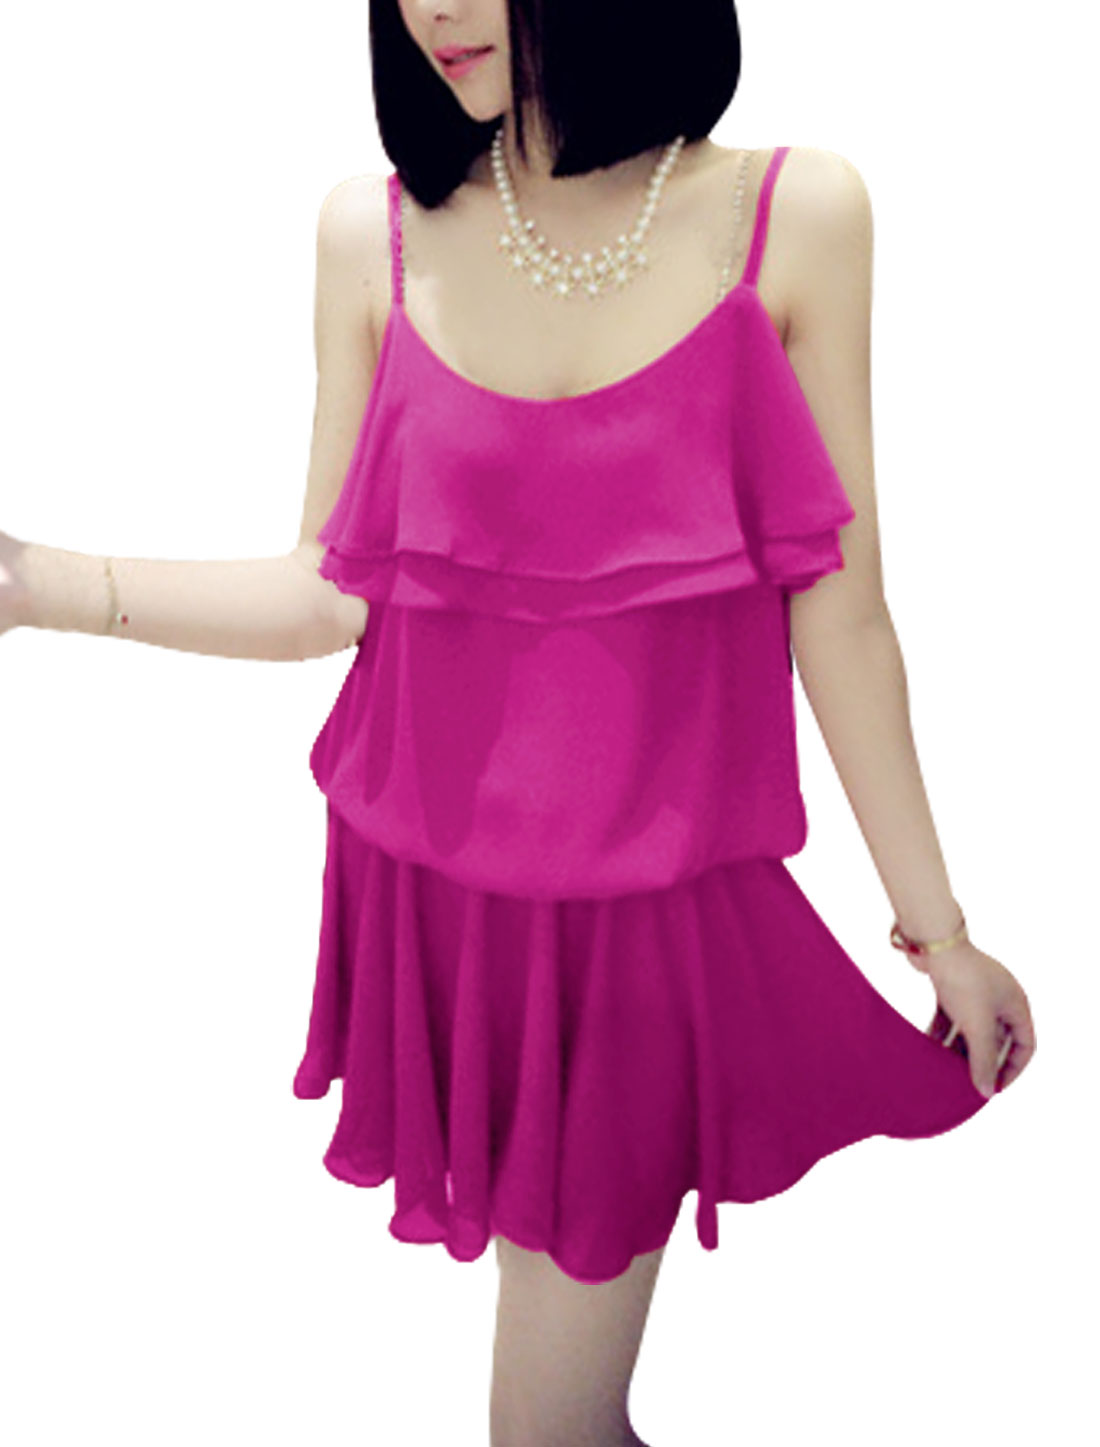 Lady Spaghetti Strap Layered Flouncing Top Dress Fuchsia S